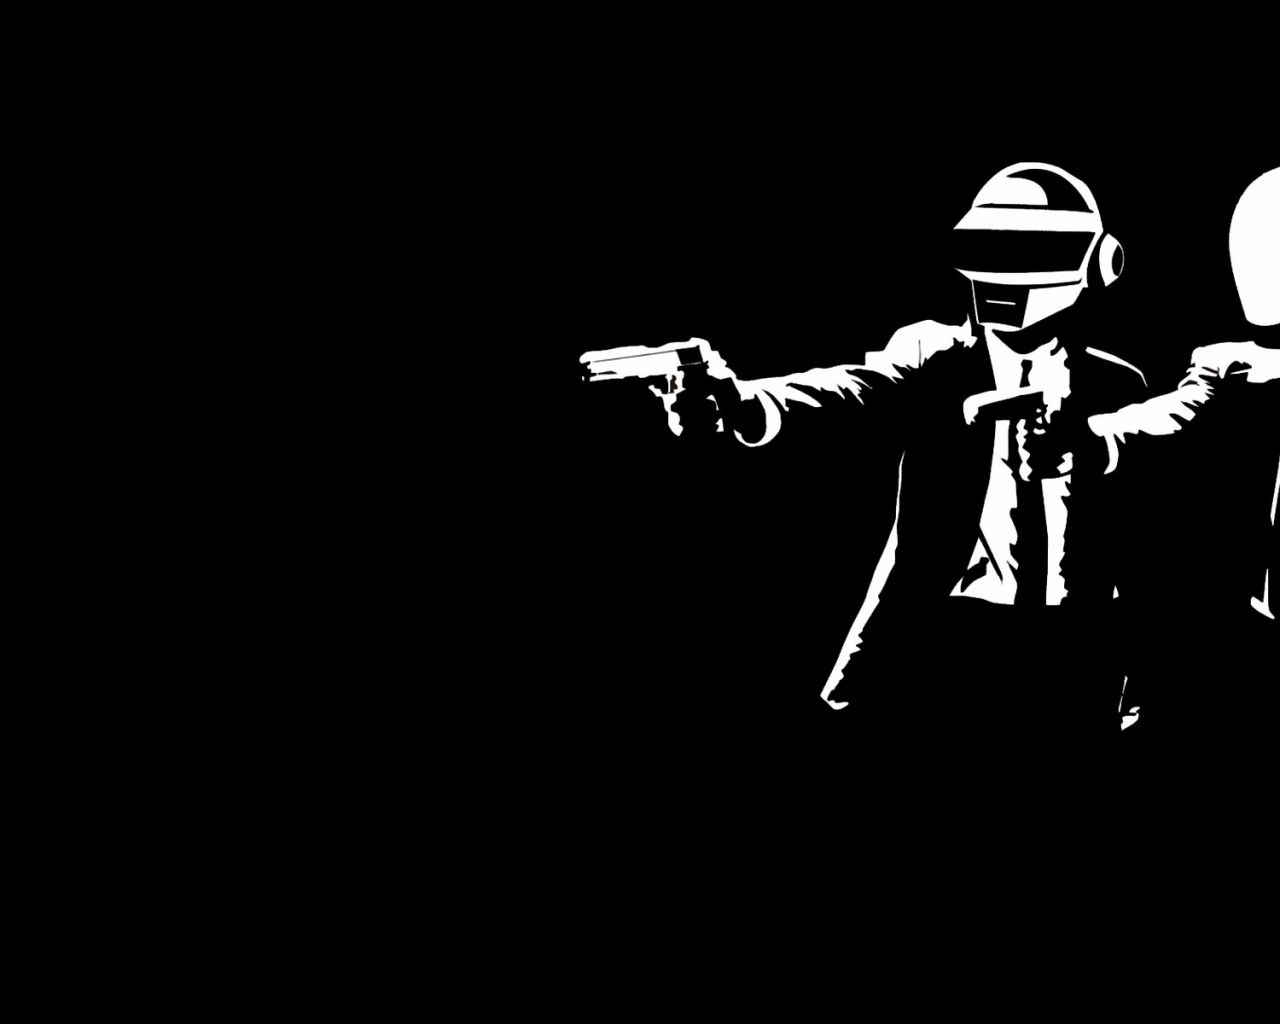 Free Download Pictures Star Wars Pulp Fiction Crossover Wallpaper